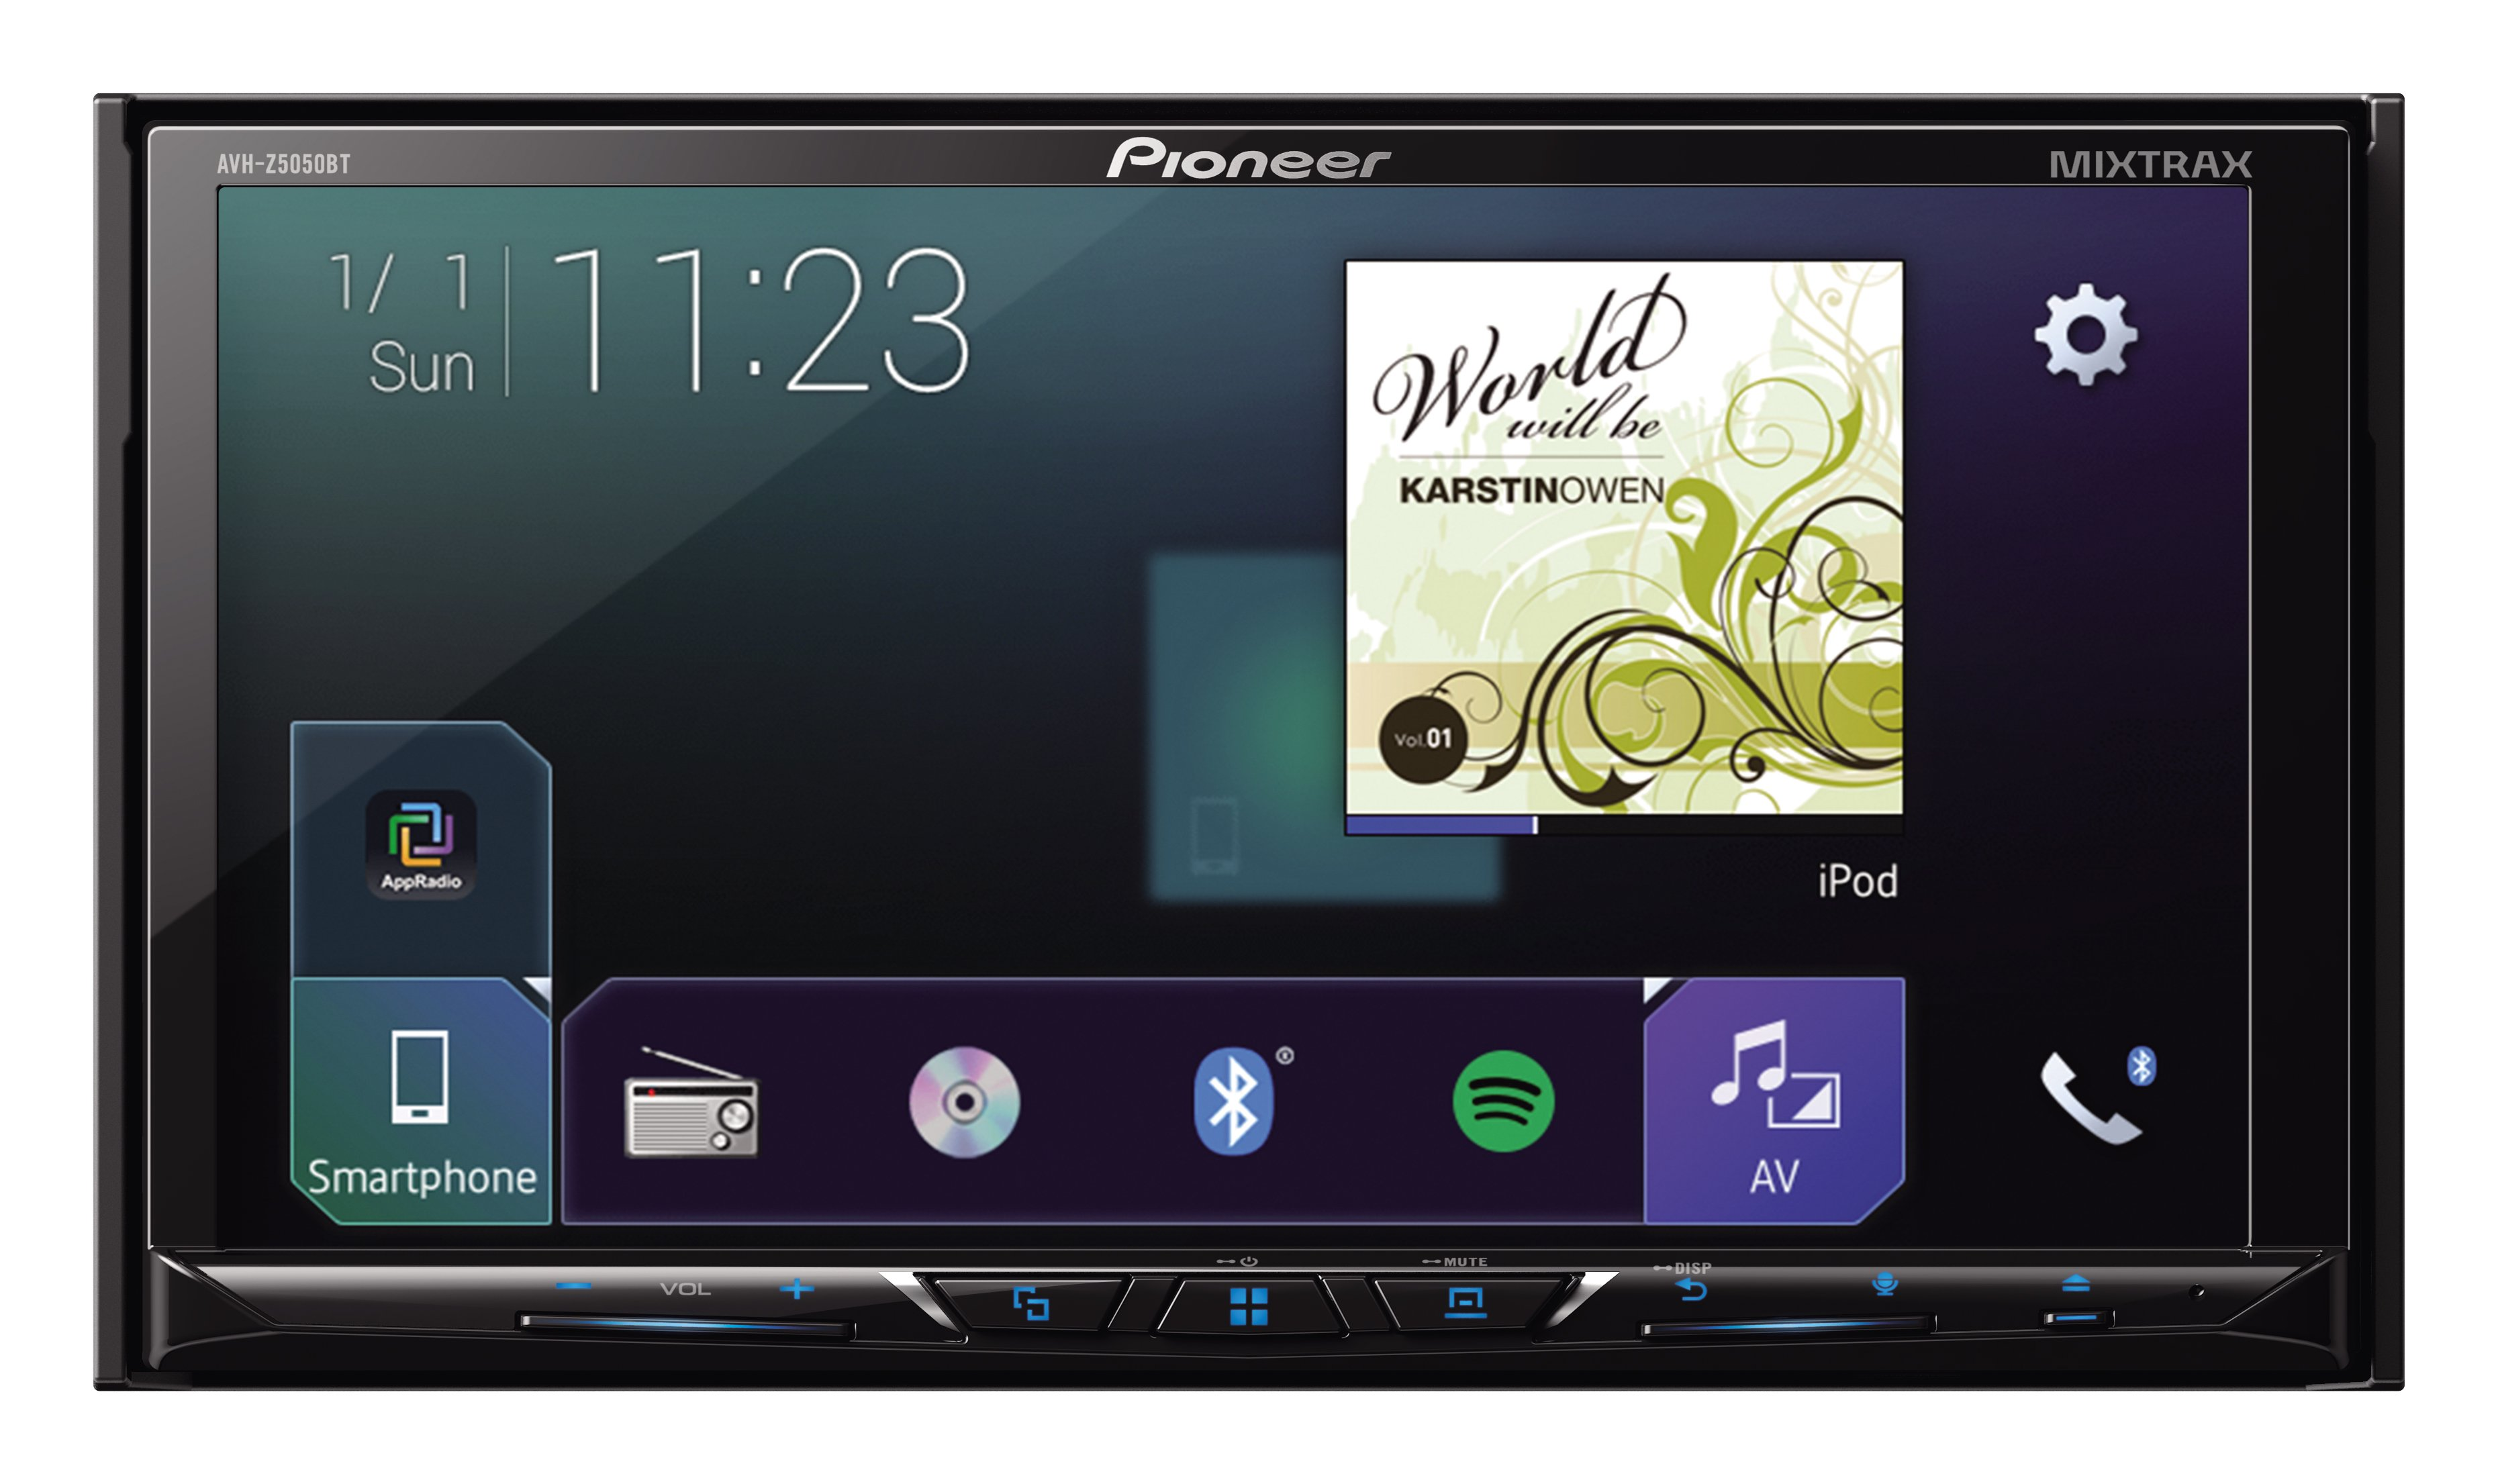 pioneer avh 288bt qual formato de video hockey player diagram autoestereo 7 quot 2 din con bt usb mp3 dvd marca